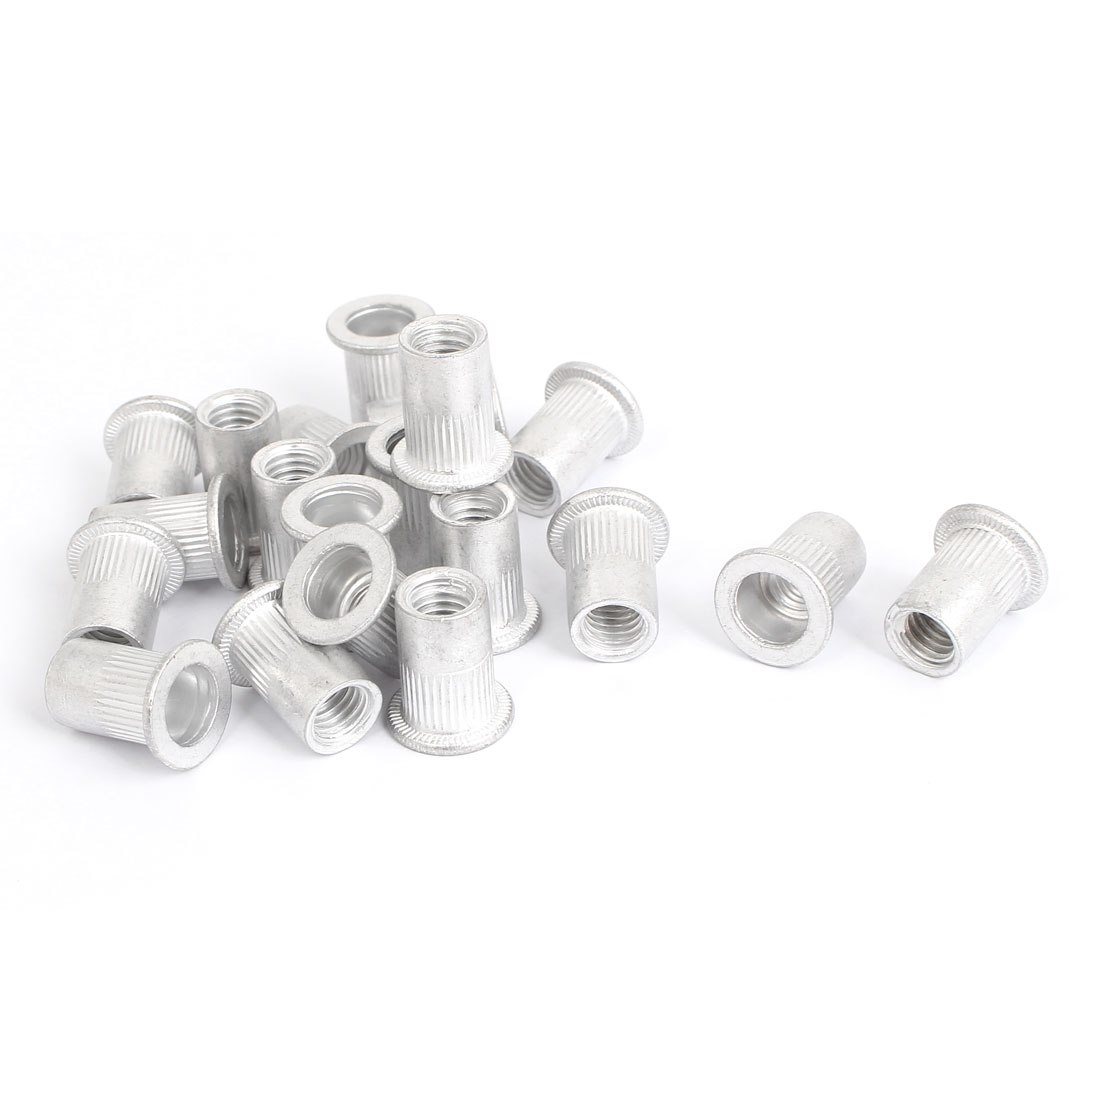 M8 Thread Aluminum Rivet Nut Insert Nutsert 20pcs